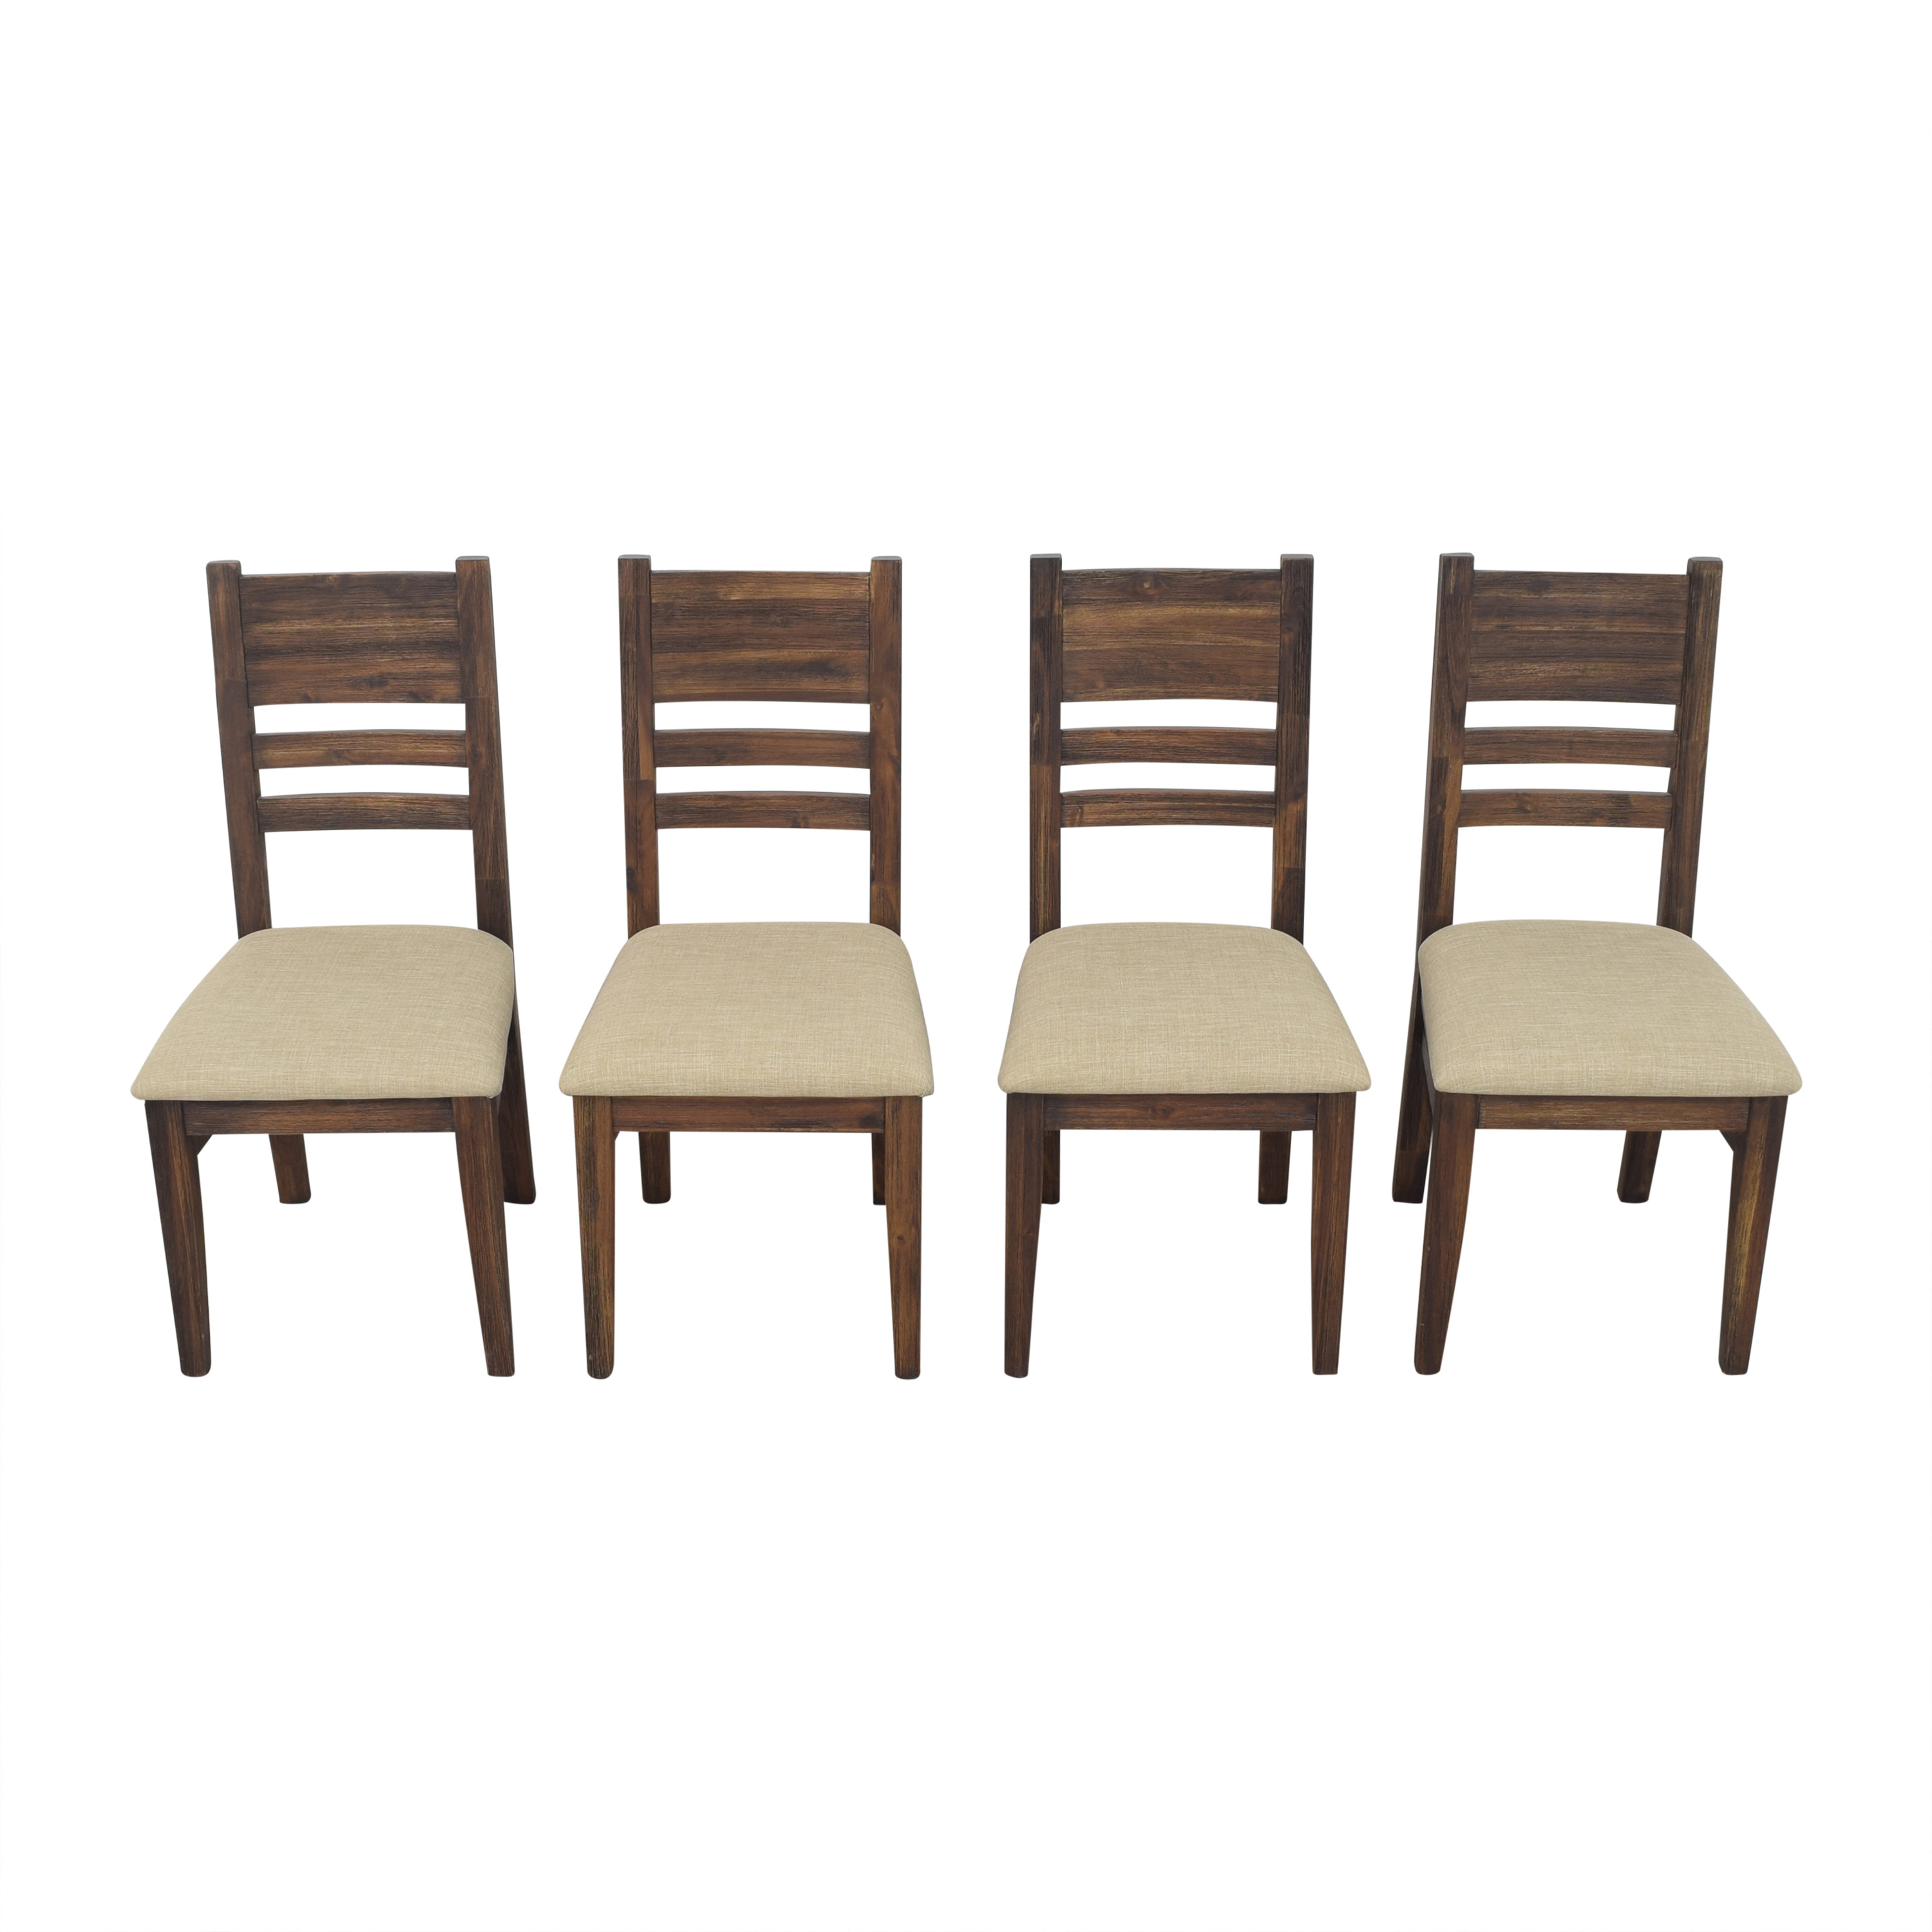 buy Macy's Avondale Dining Side Chairs Macy's Dining Chairs